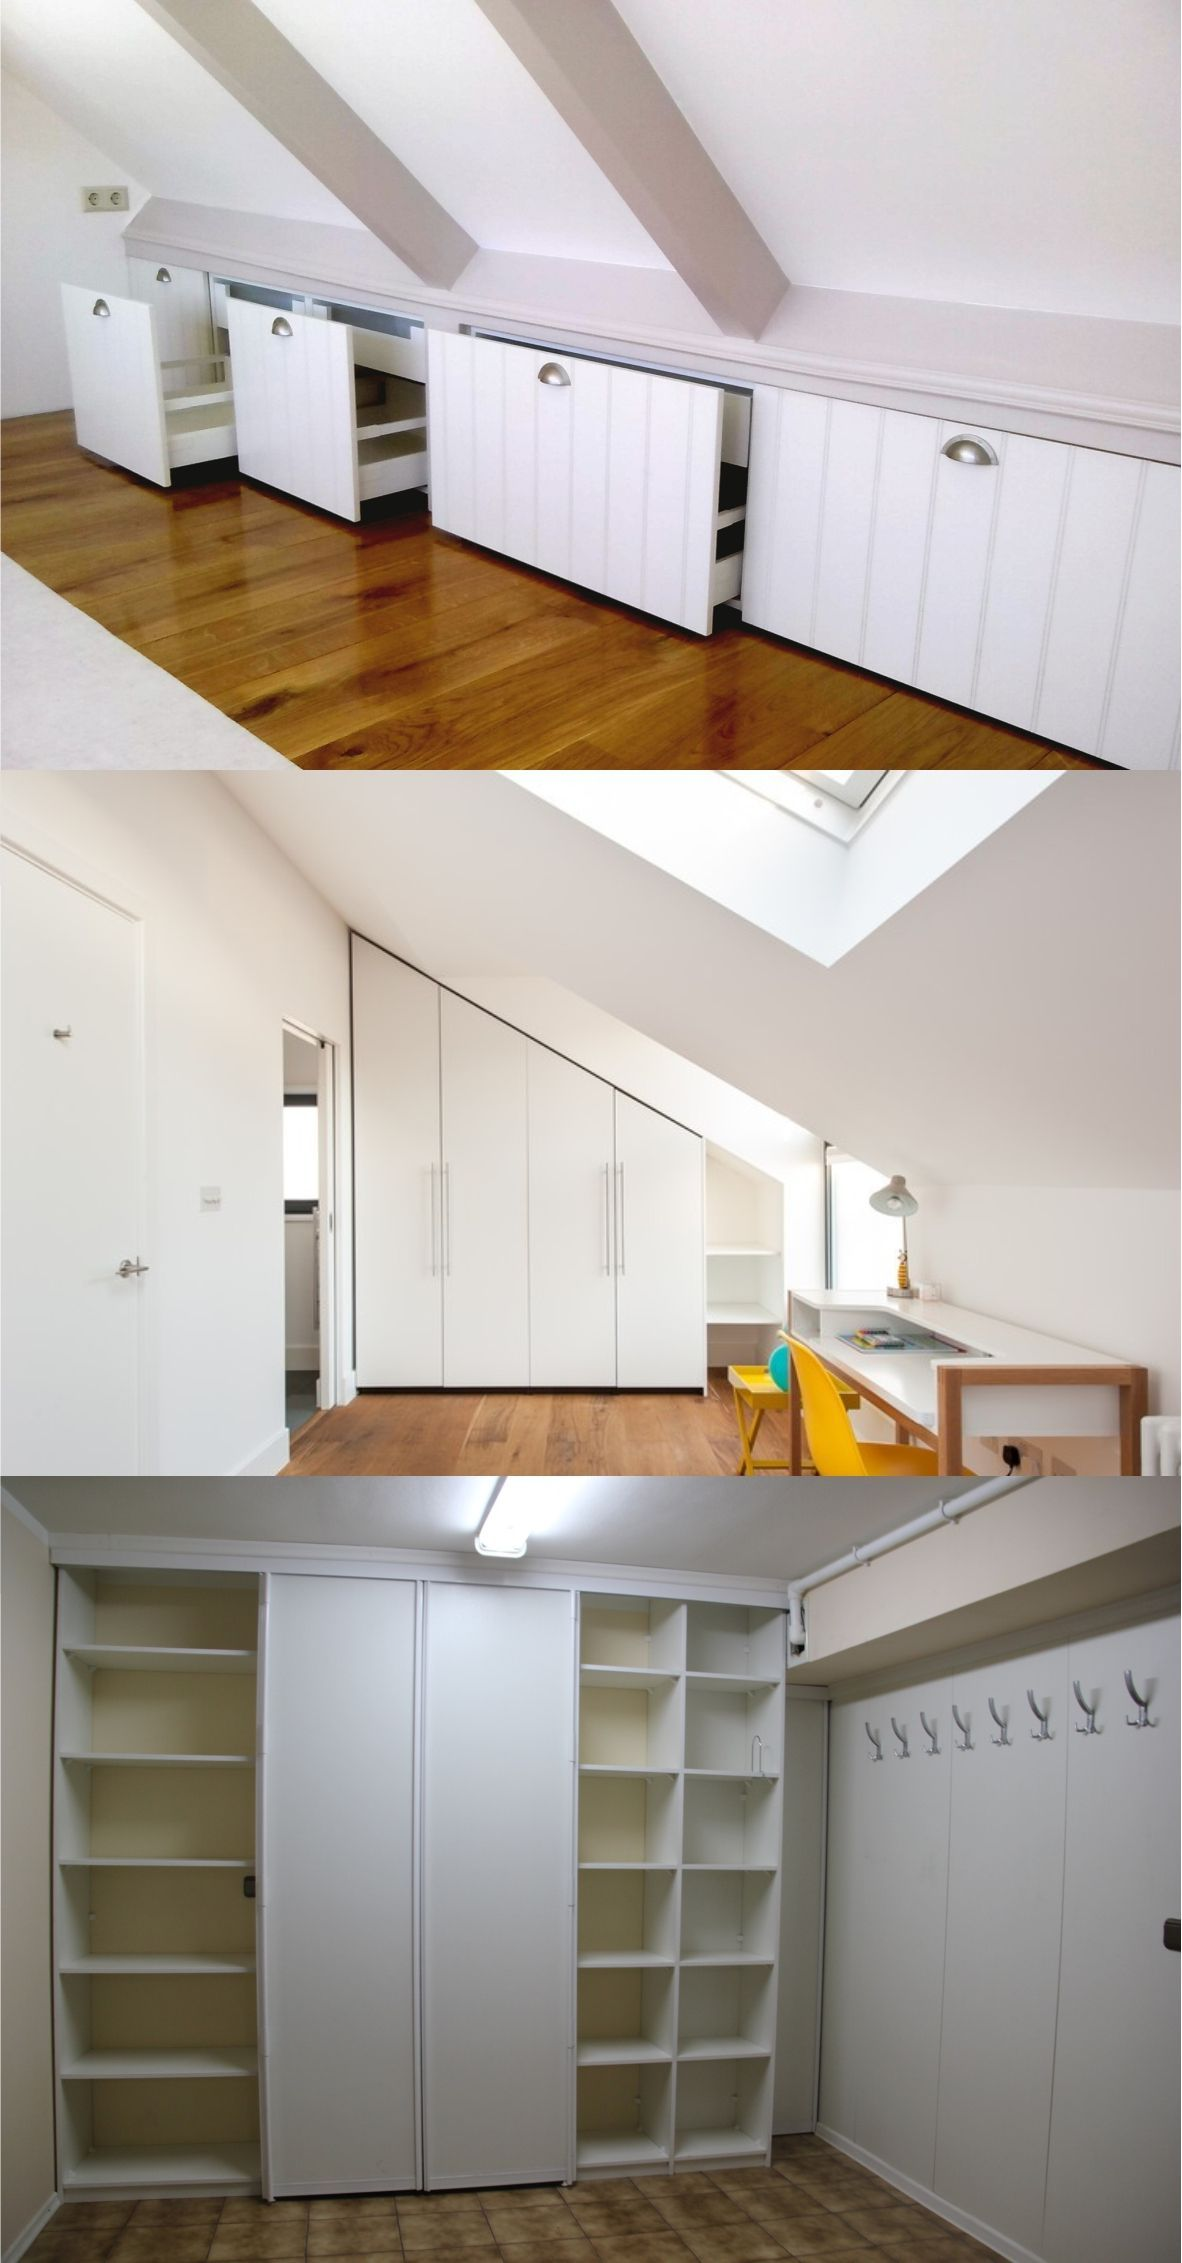 An Additional Great Concept Is To Make Use Of The Attic As A Room With A Storage Cabinet If You Have A Young A Attic Bedroom Storage Attic Rooms Attic Storage